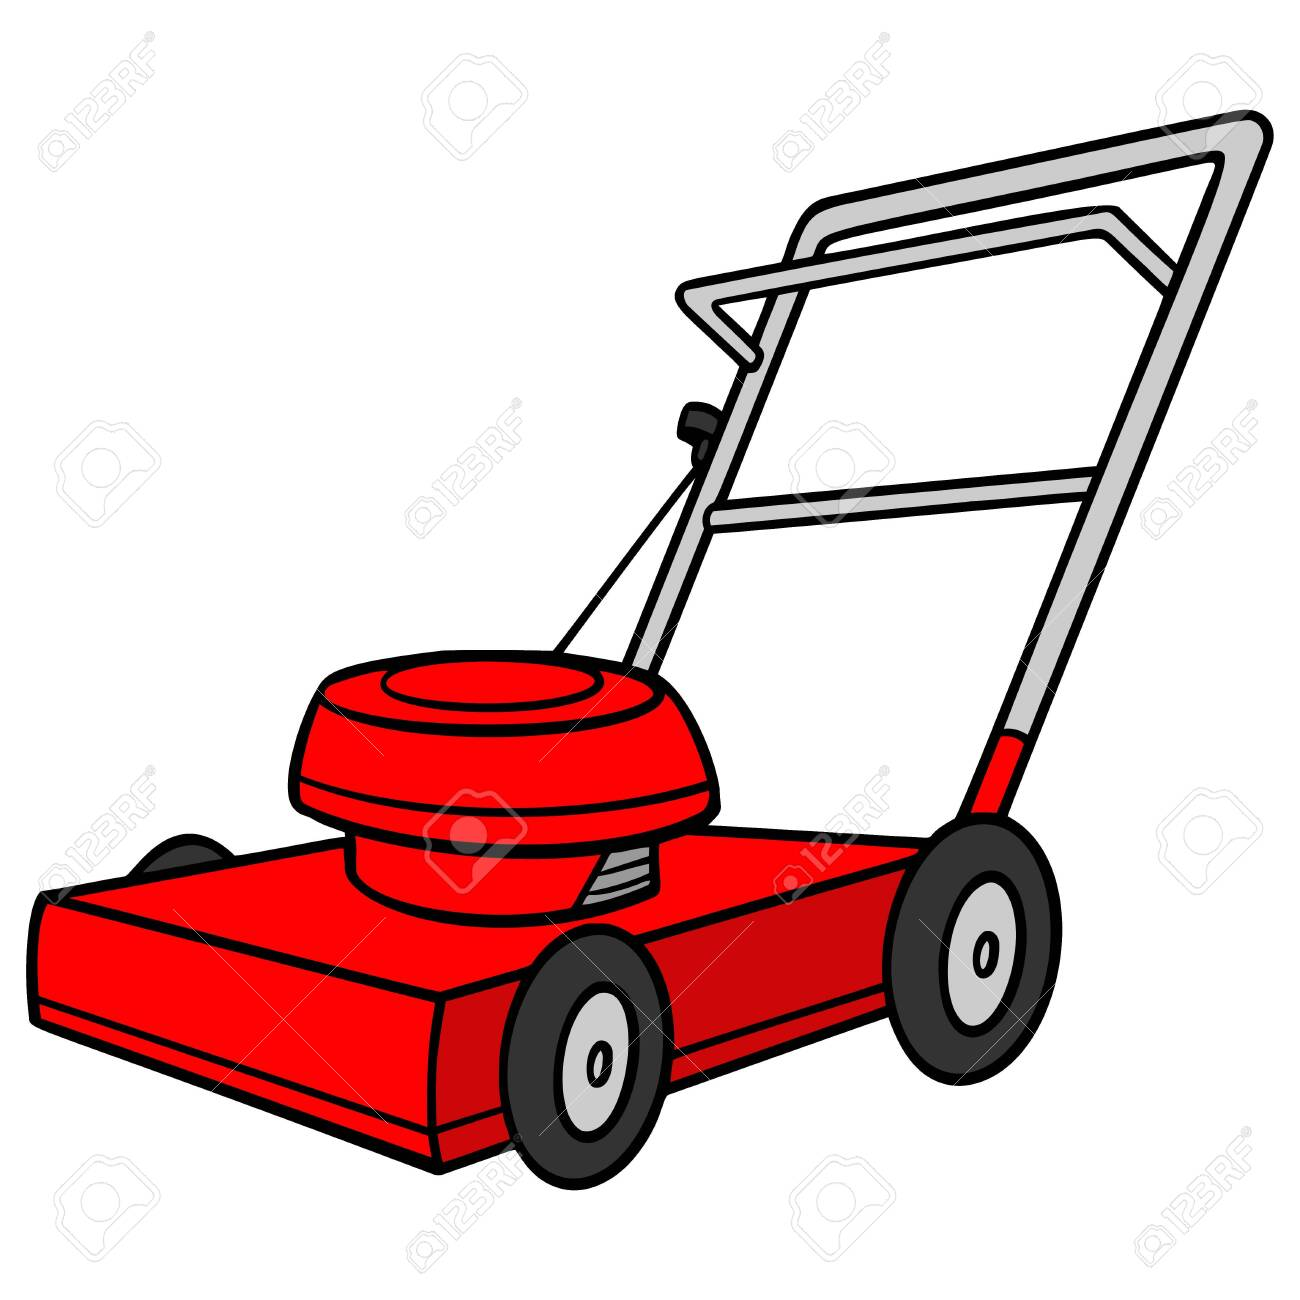 Lawn Mower A Cartoon Illustration Of A Backyard Lawn Mower Royalty Free Cliparts Vectors And Stock Illustration Image 137962997